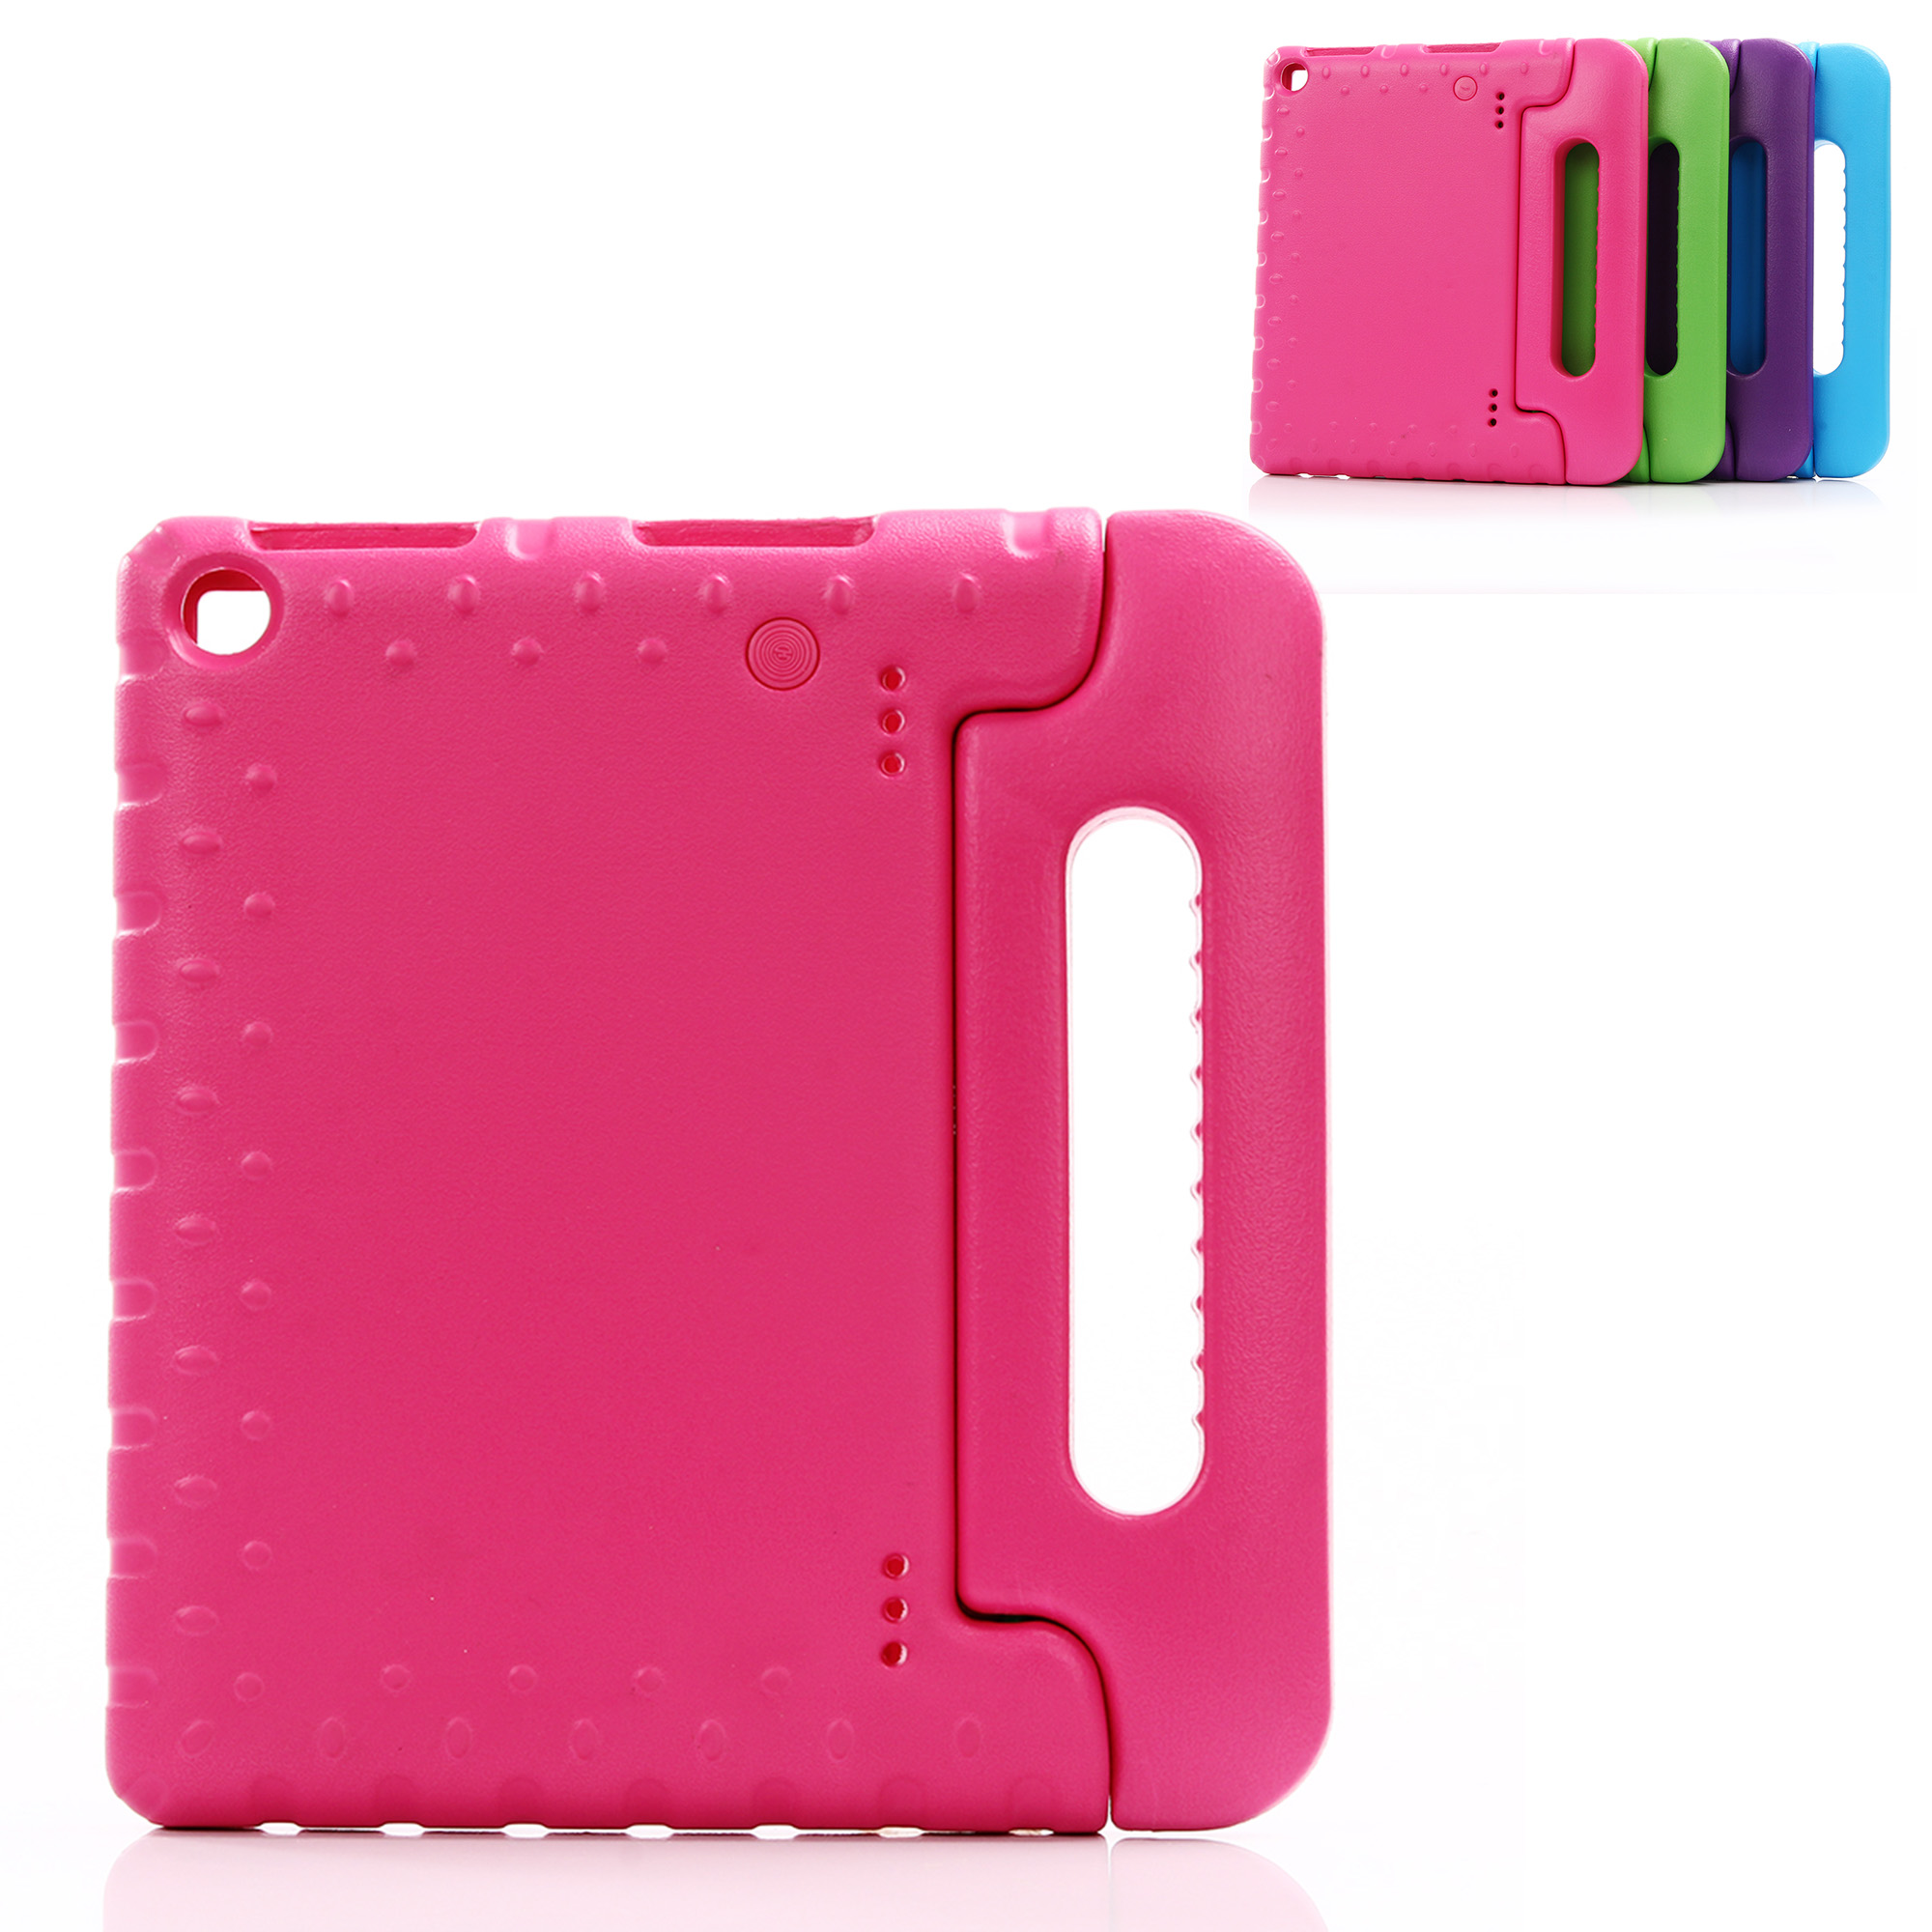 Dteck For Amazon Fire HD 8 Tablet Rose Kids Style Shockproof Silicone Gel Handle Stand Protective Case Cover